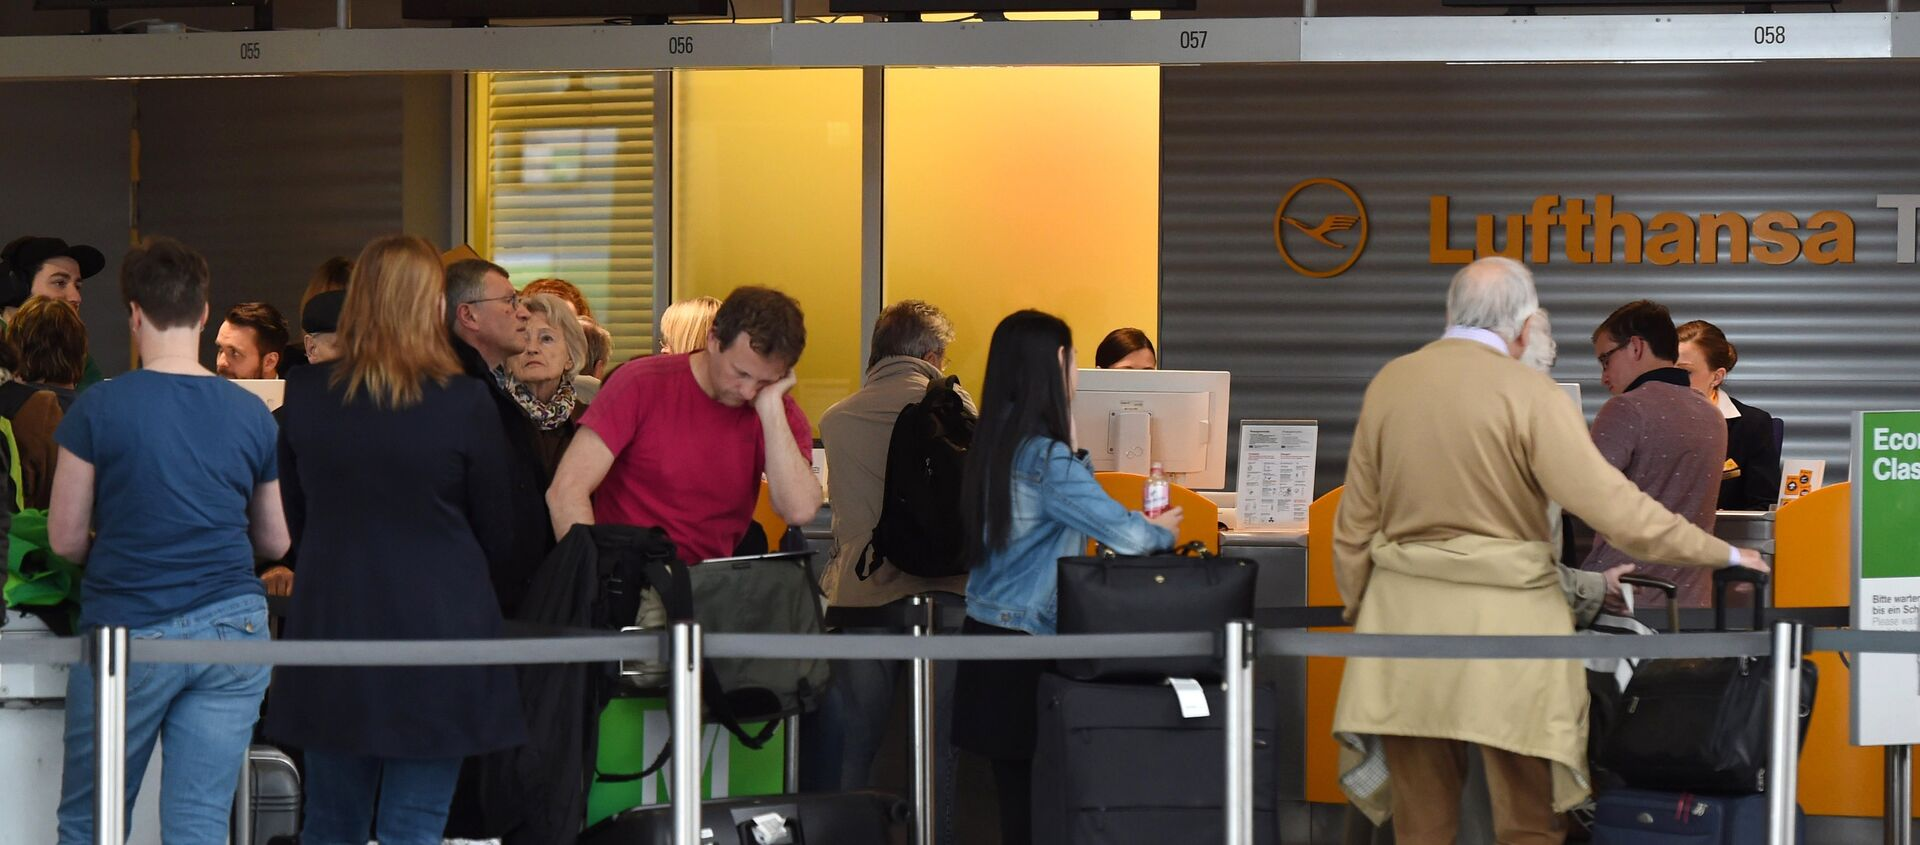 Passengers queue at a Lufthansa counter at the Franz-Josef-Strauss-airport in Munich, southern Germany, on April 27, 2016.  - Sputnik International, 1920